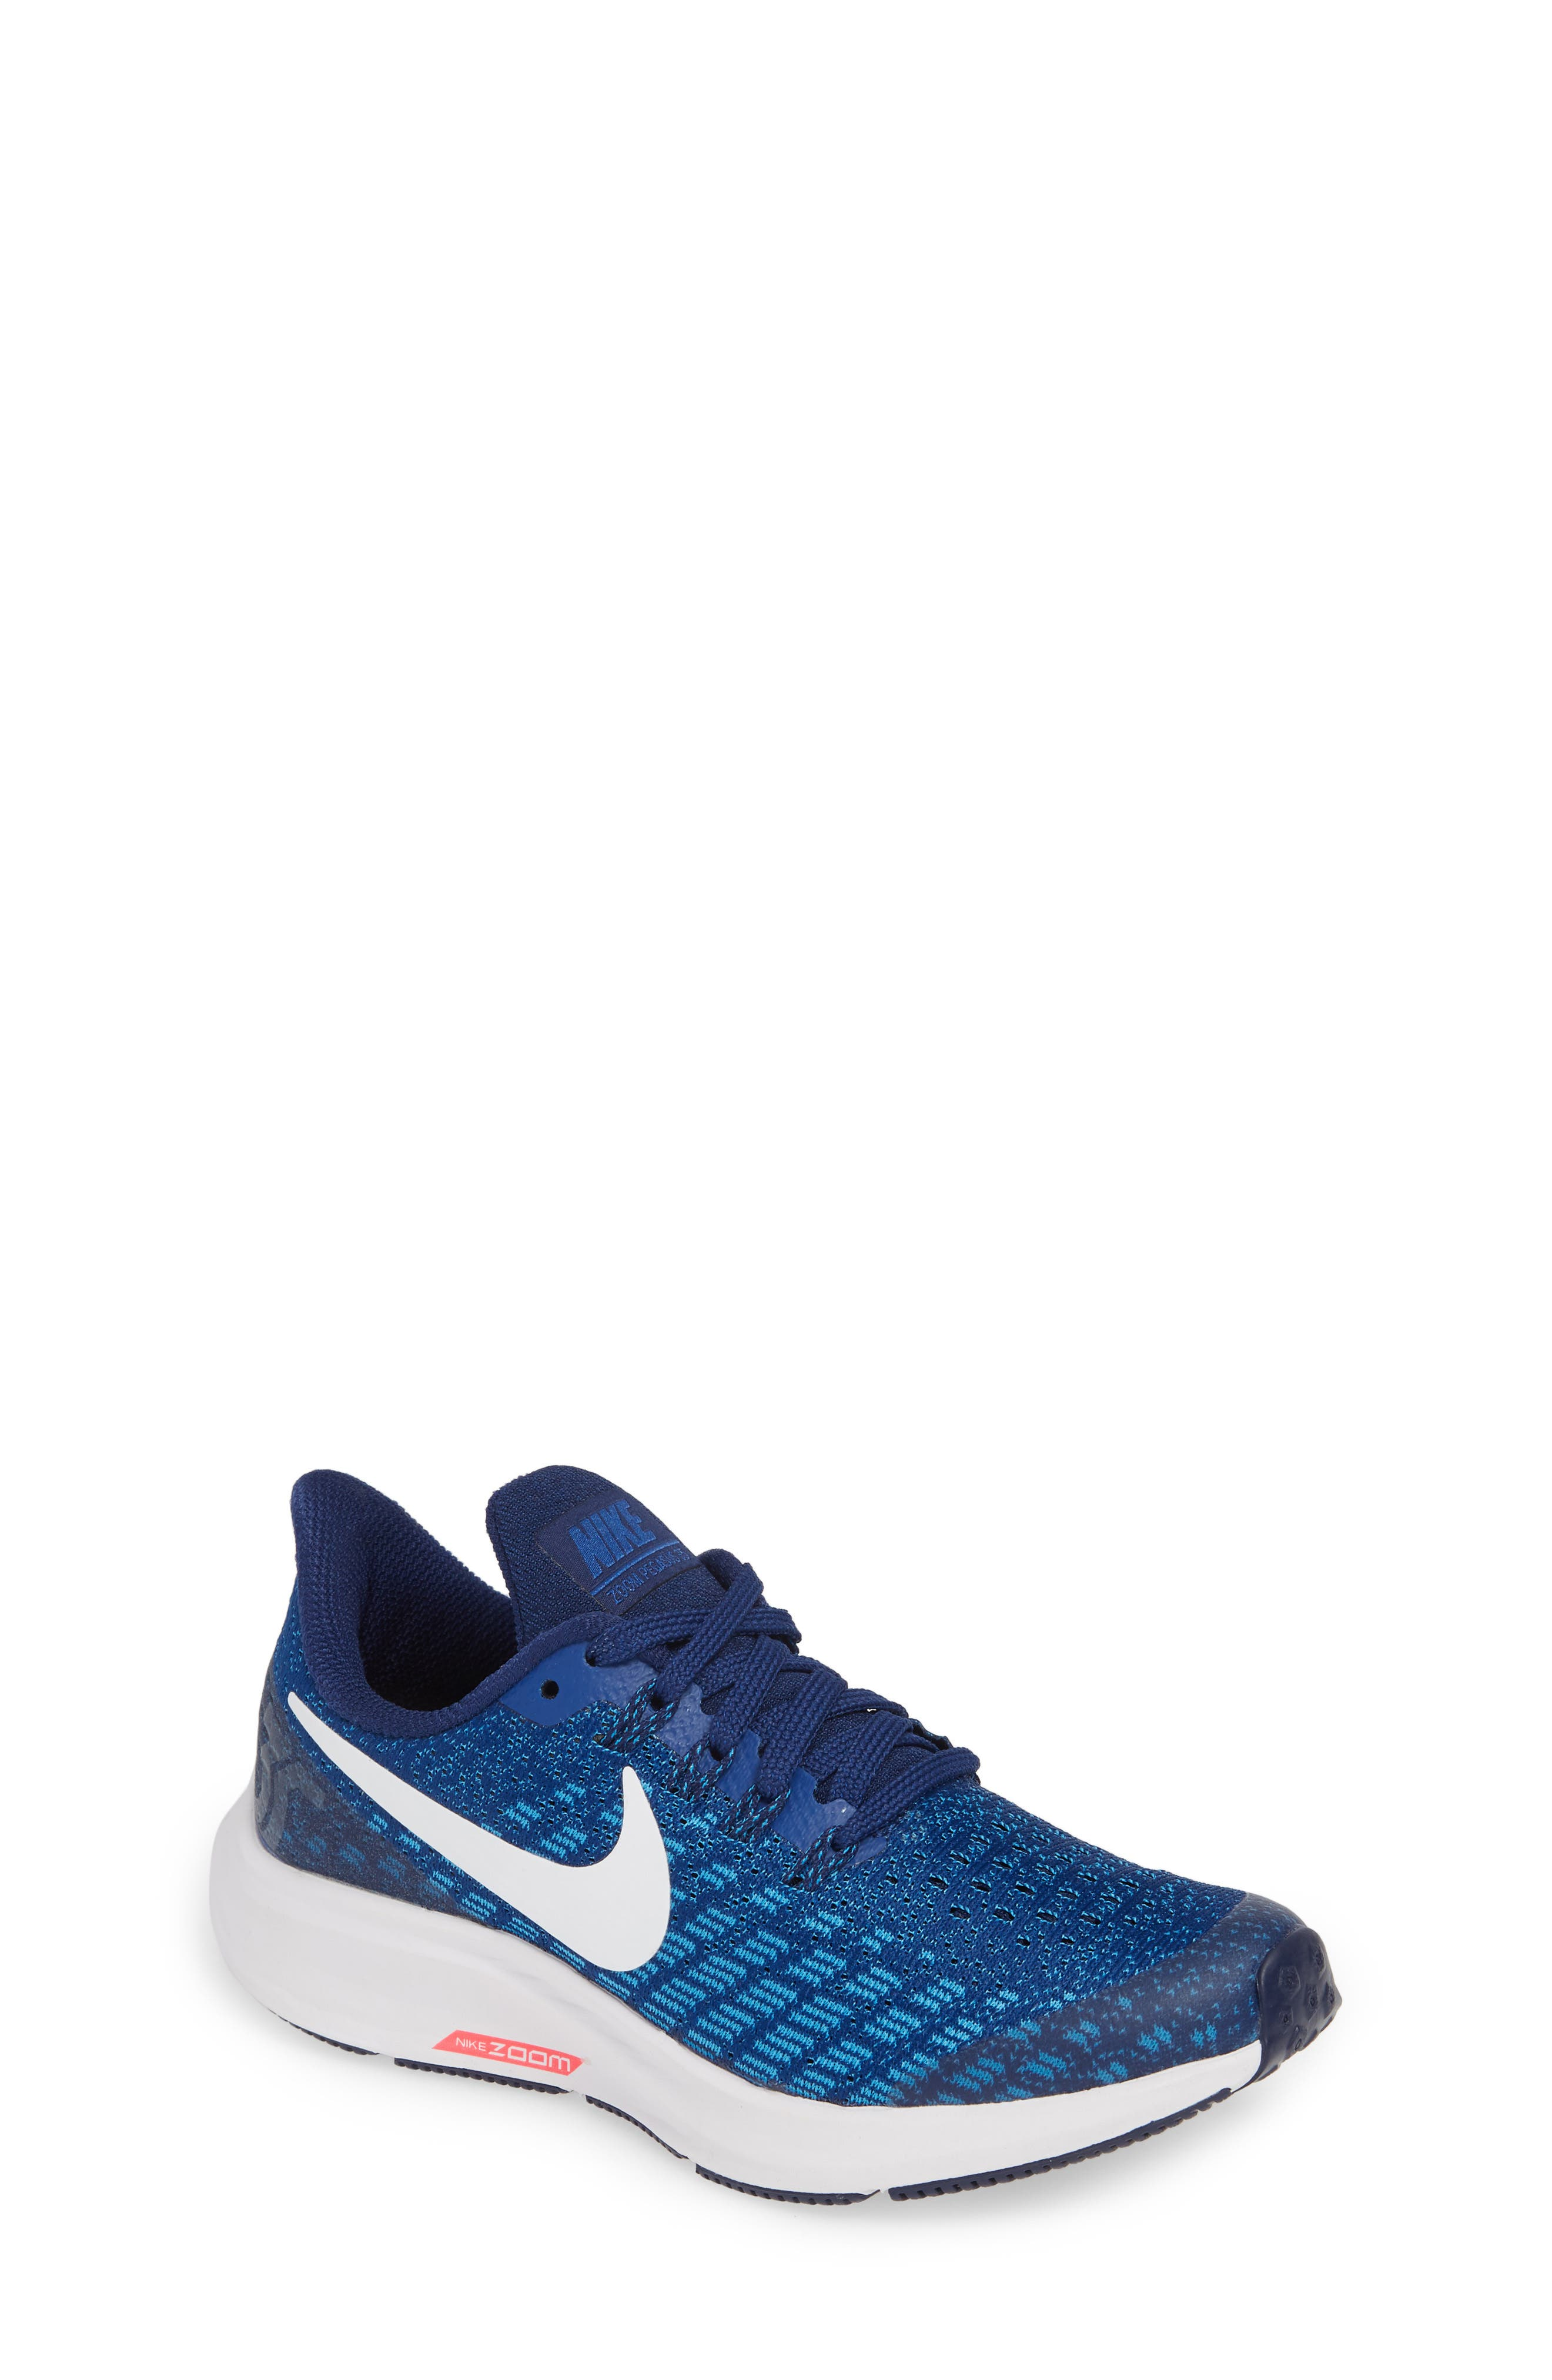 NIKE, Air Zoom Pegasus 35 Sneaker, Main thumbnail 1, color, INDIGO FORCE/ WHITE-BLUE-BLUE